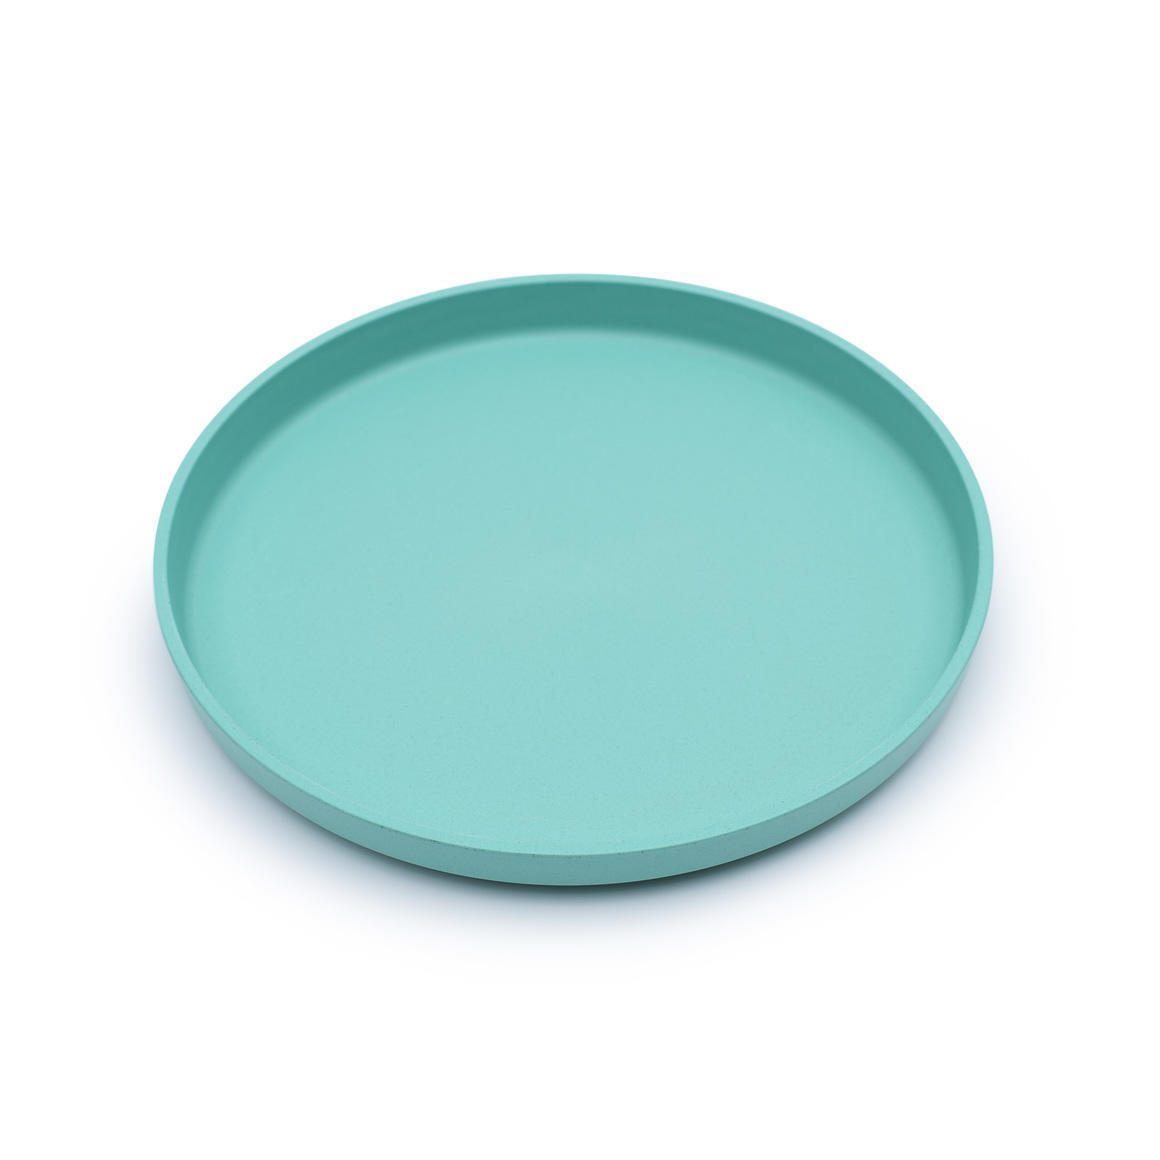 Plant-Based Plate - Green   Trada Marketplace